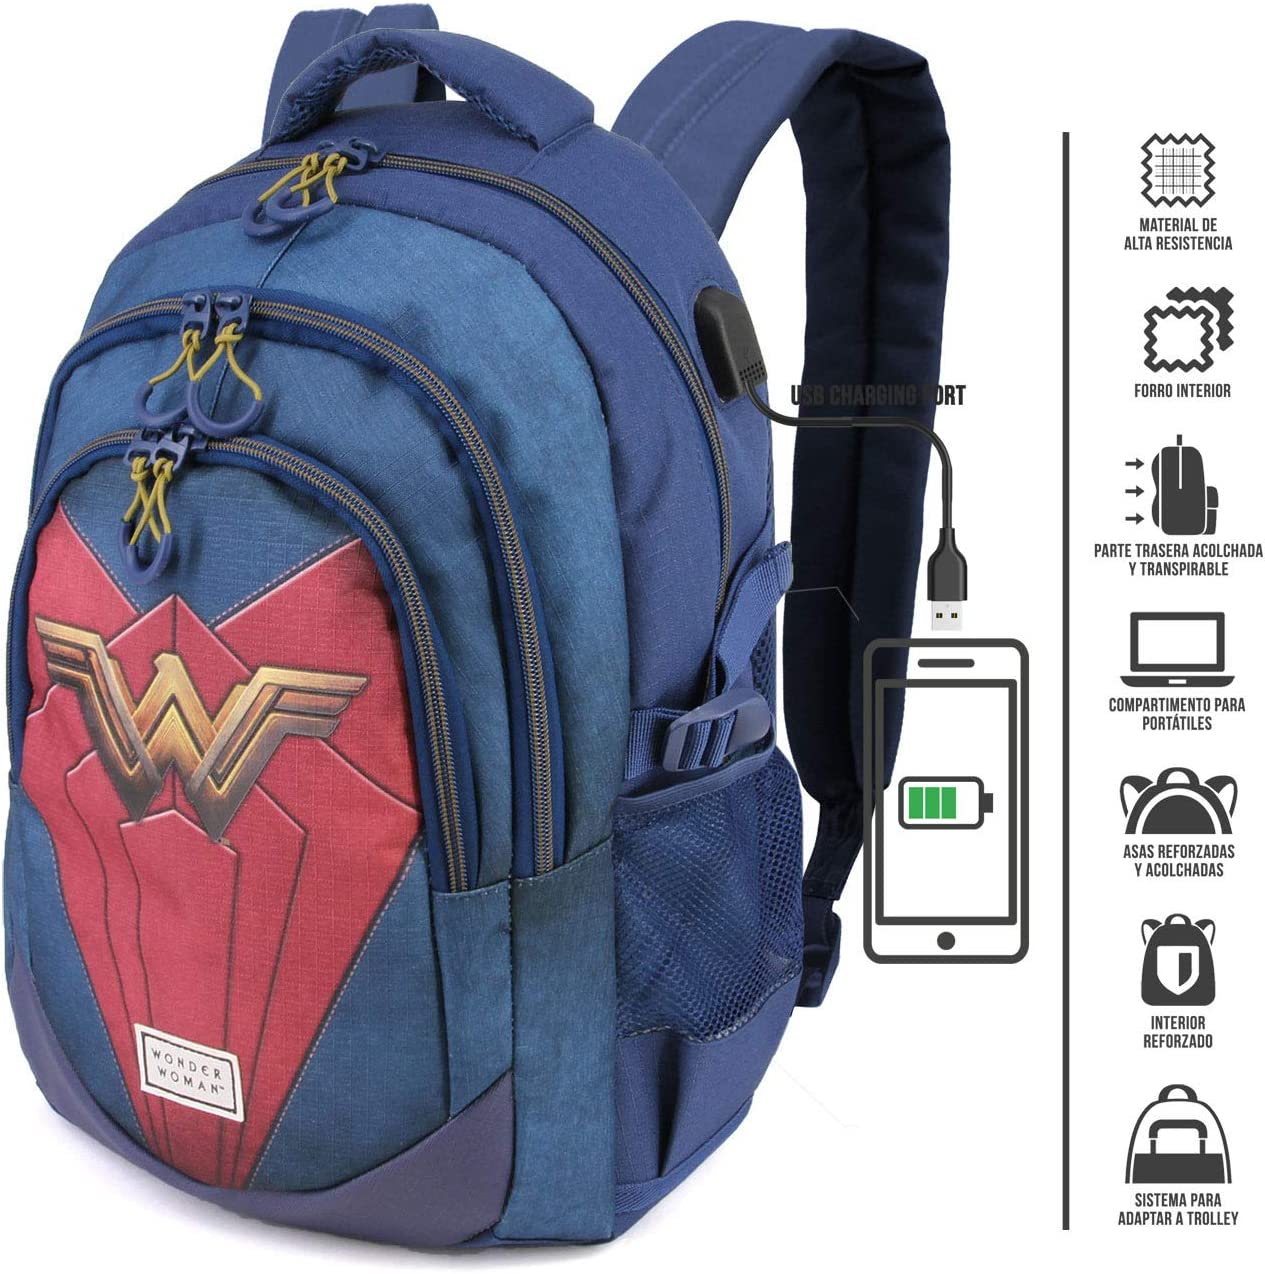 21 liters Karactermania Wonder Woman Emblem-zaino Running HS Sac /à Dos Loisir Multicolore Multicolour 44 cm